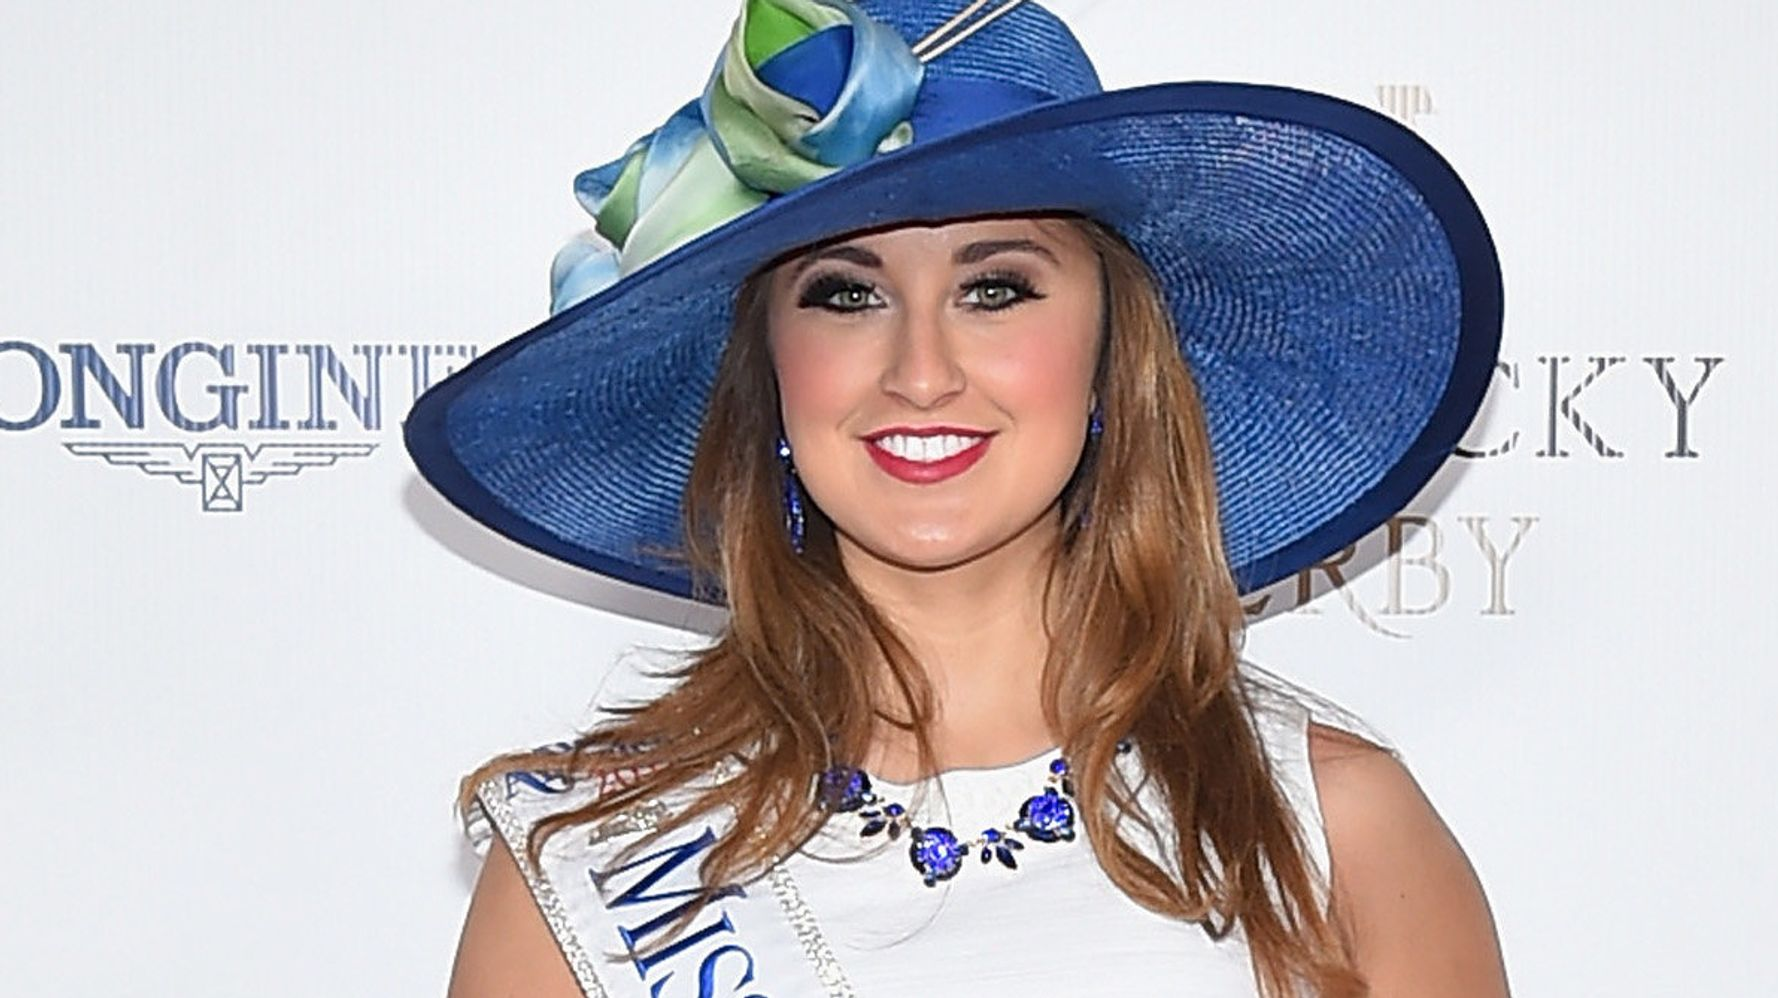 Former Miss Kentucky charged with sending naked selfies to